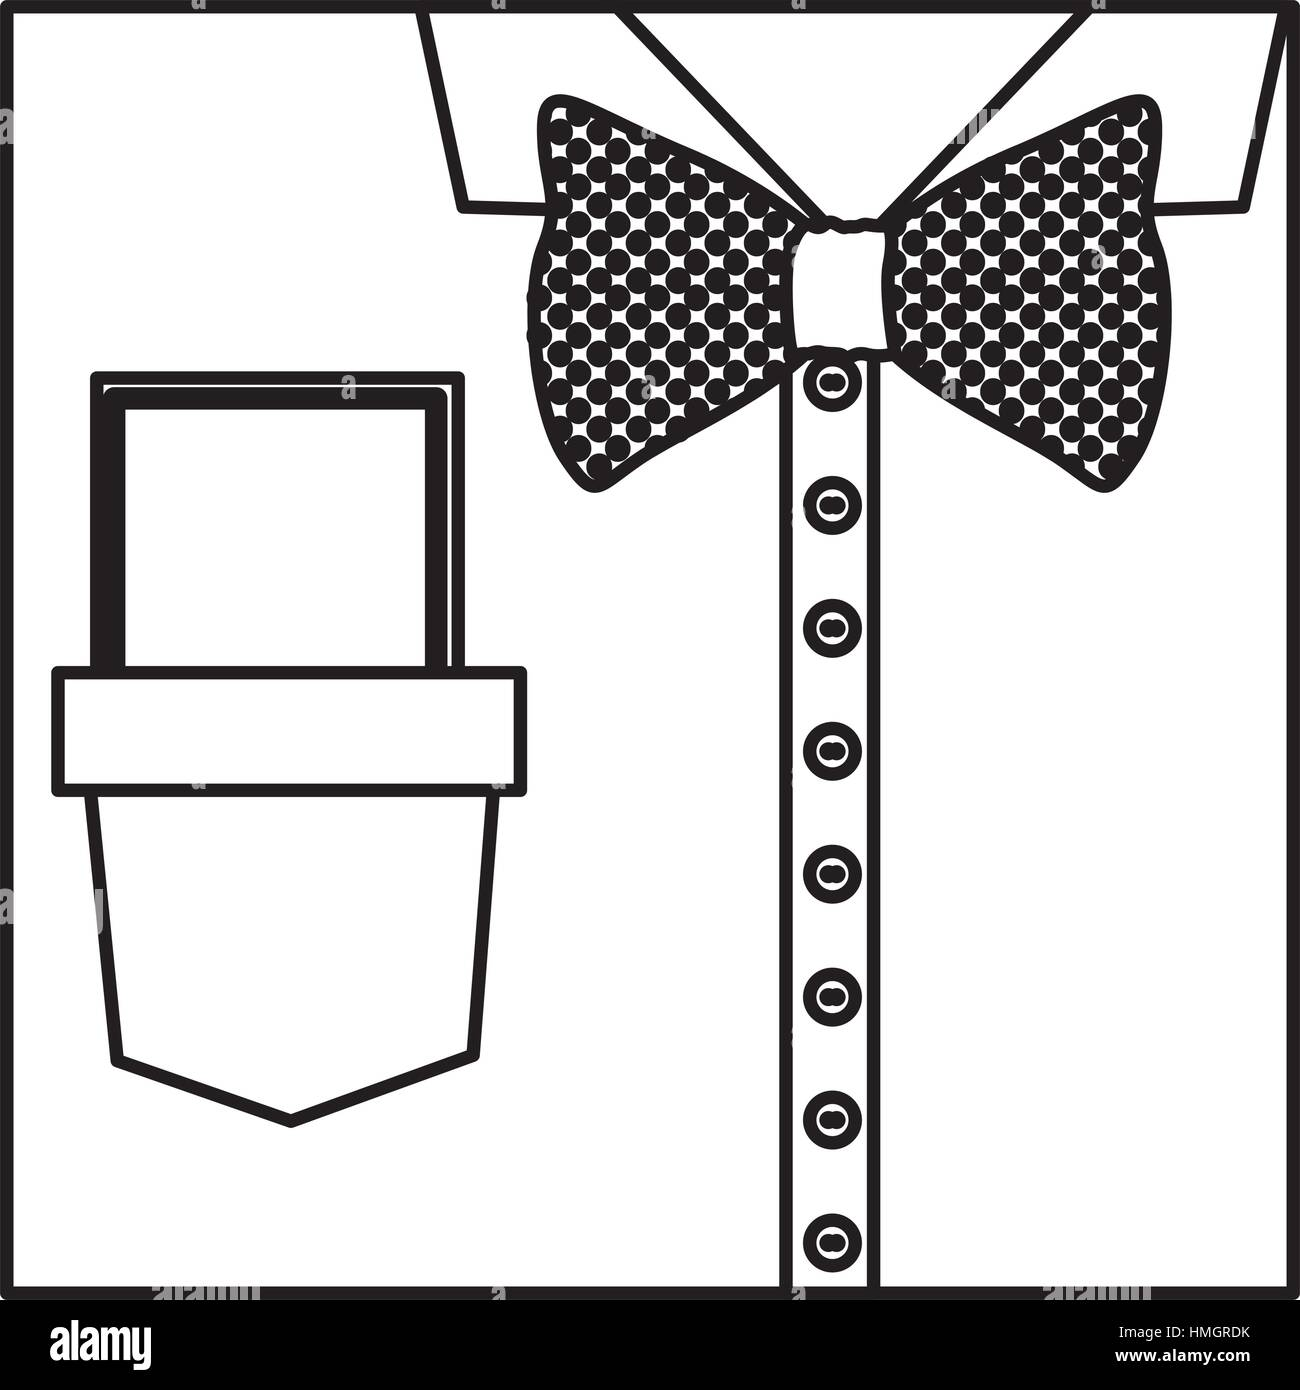 Square Border Silhouette Close Up Formal Shirt With Bow Tie And Note Diagram Vector Illustration